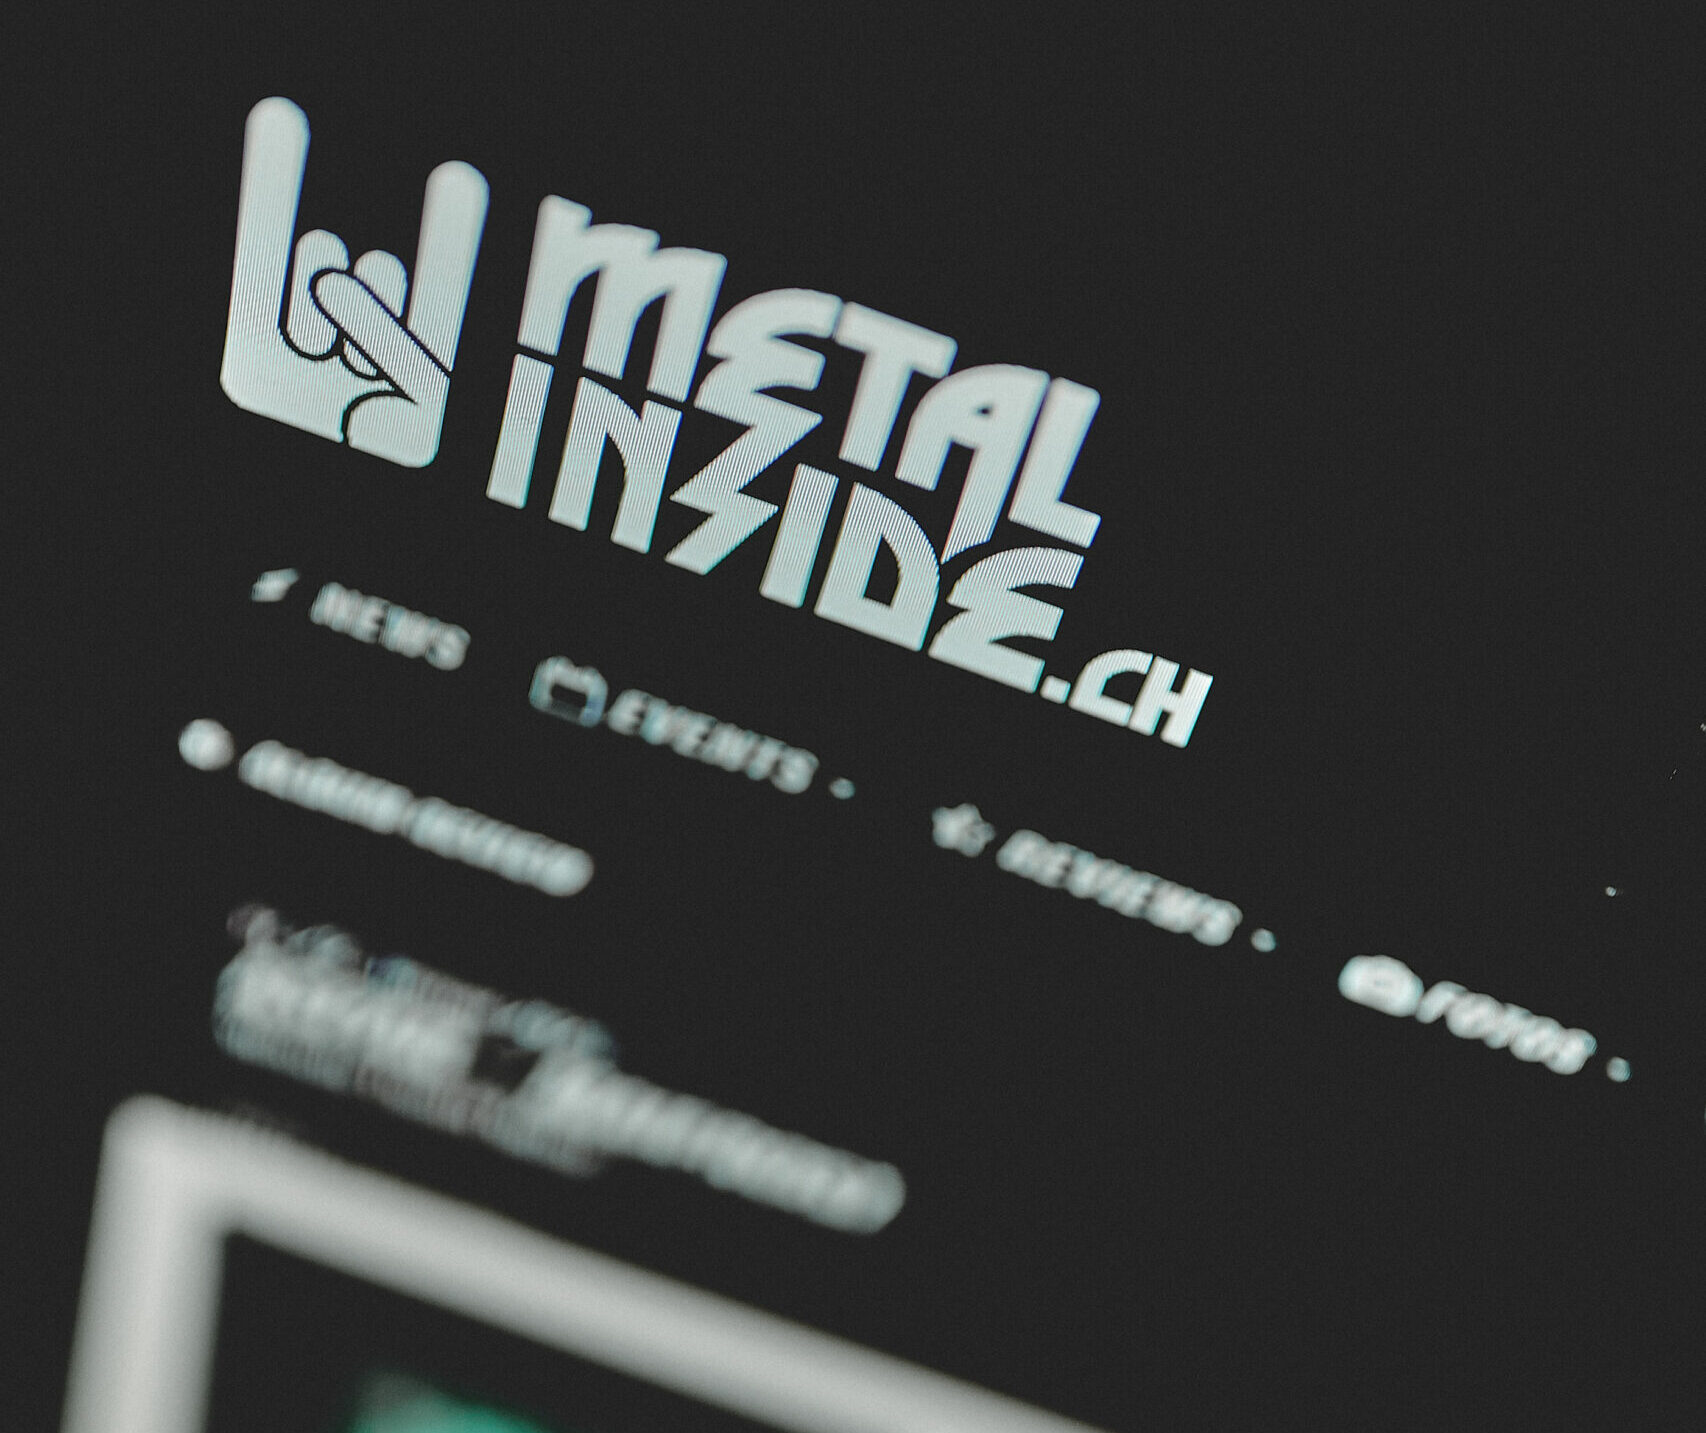 METALINSIDE.CH – Review Online!